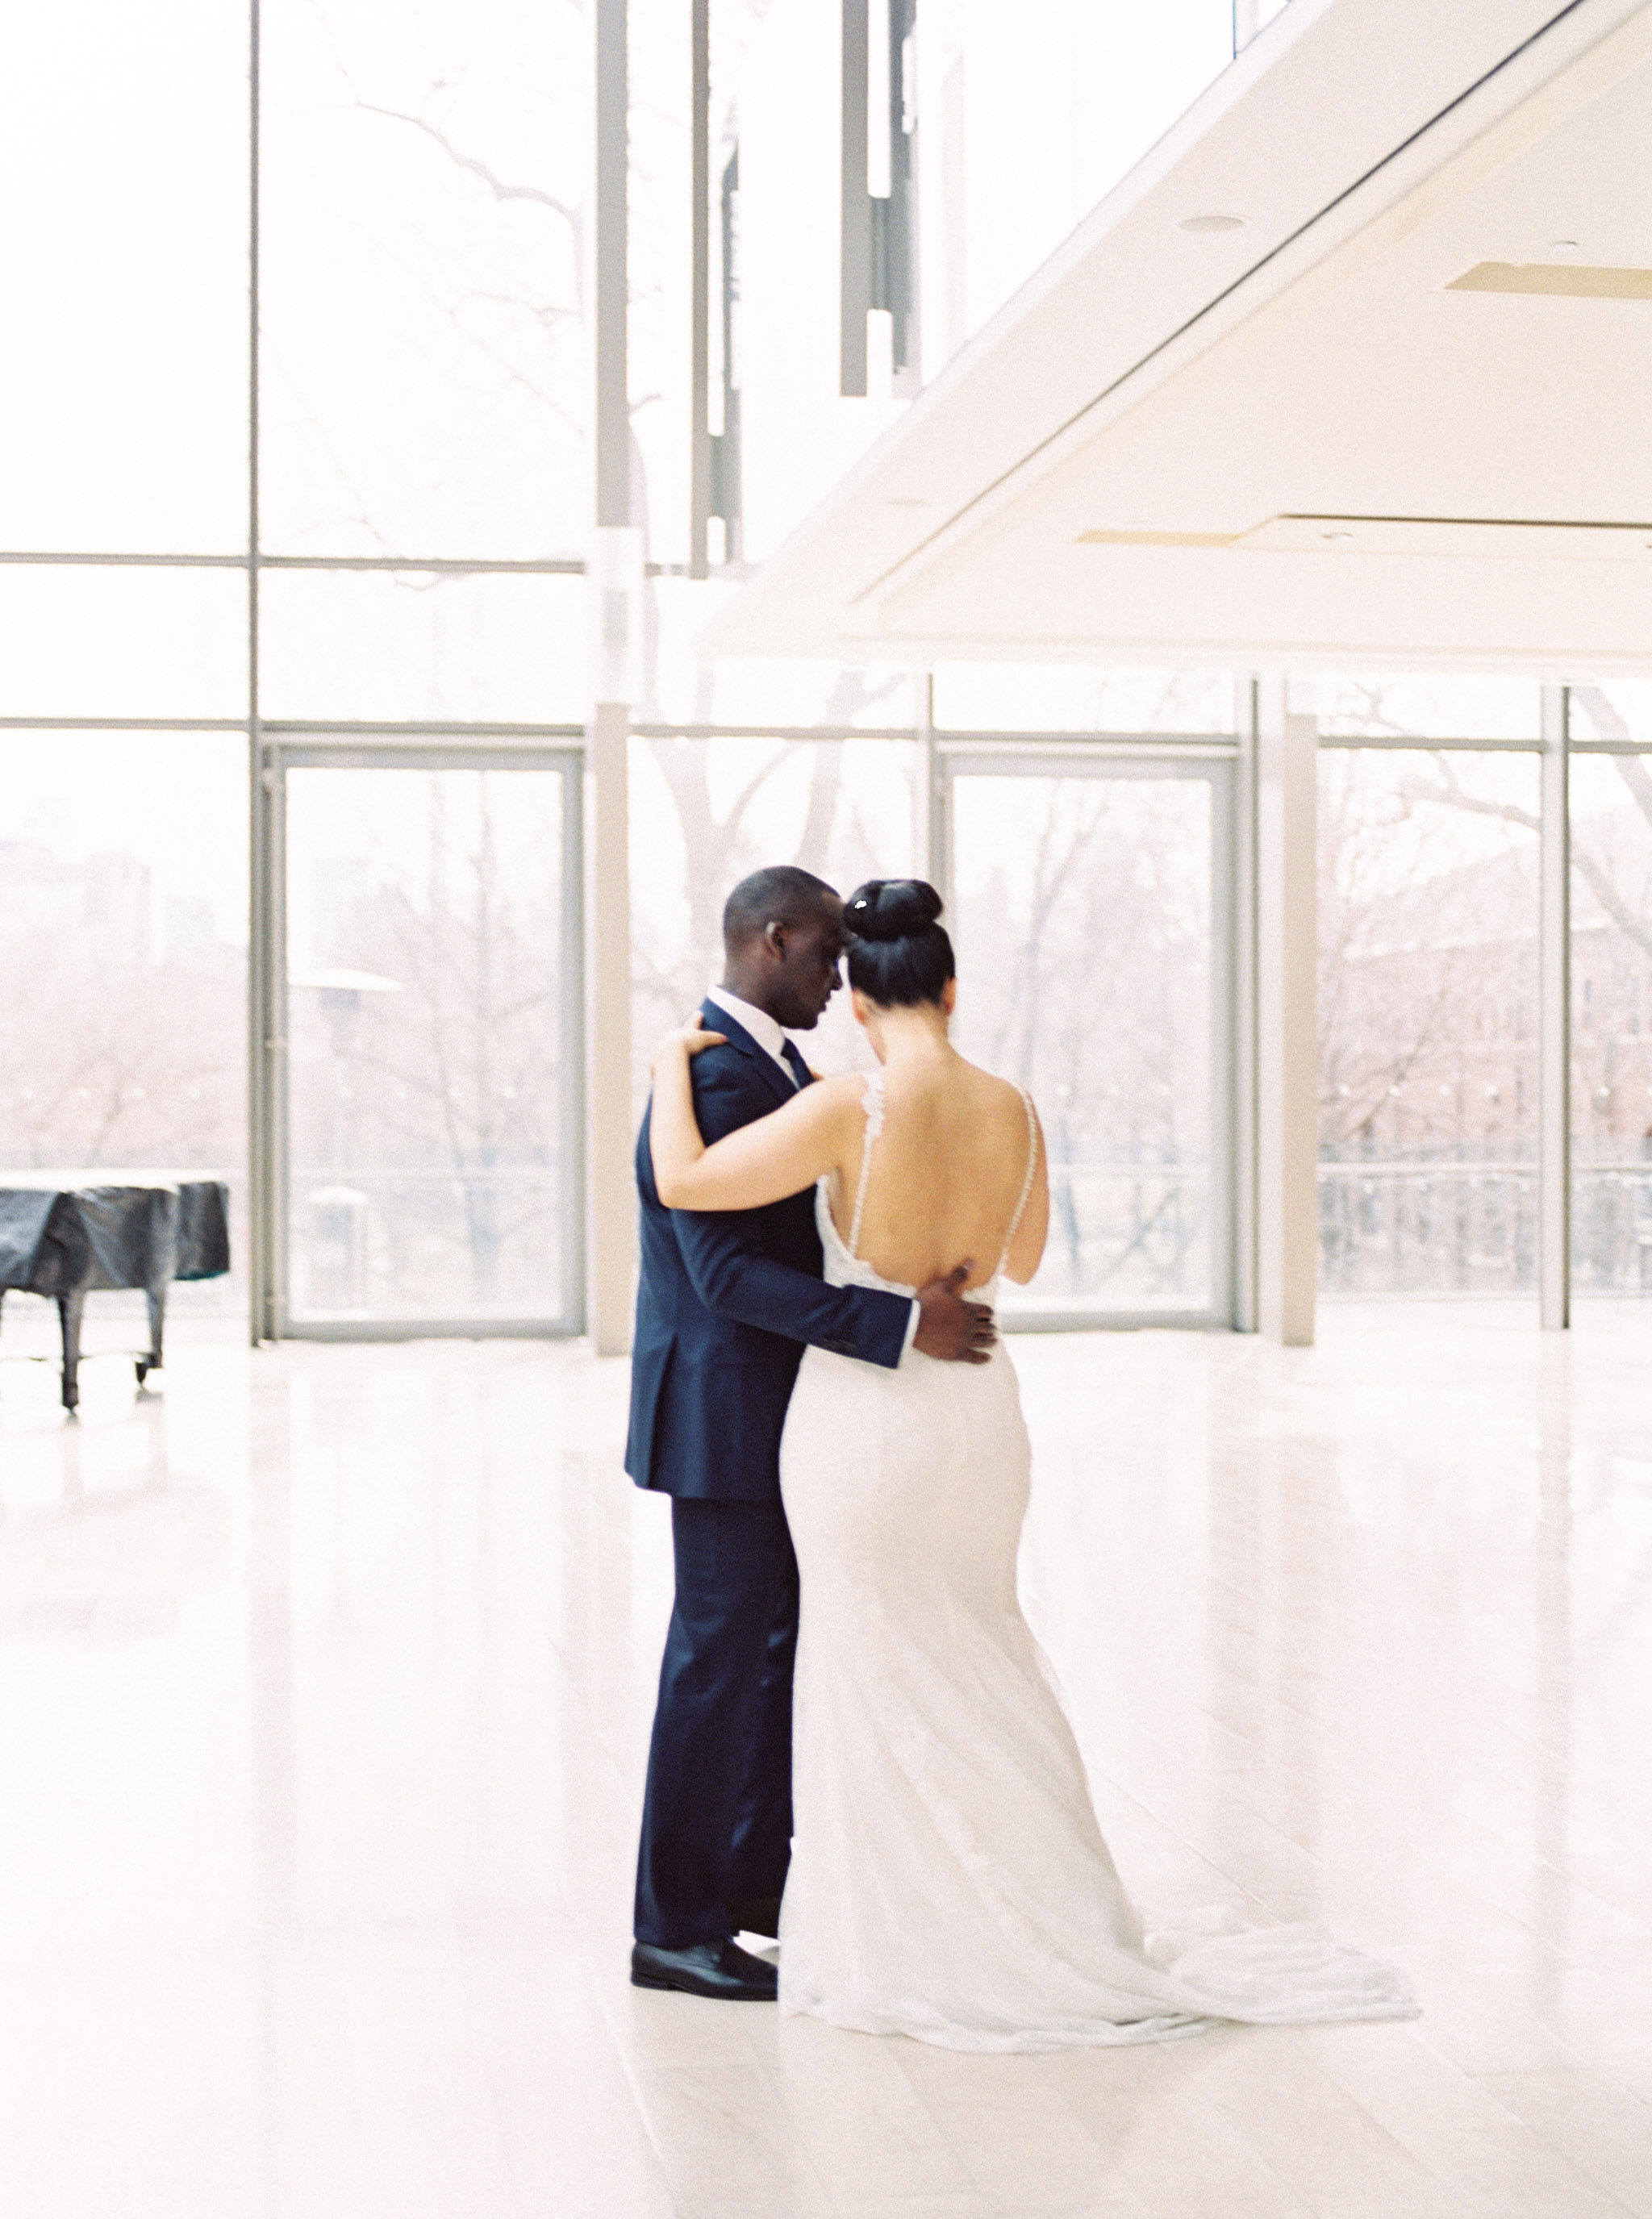 Indoor wedding photo ideas.